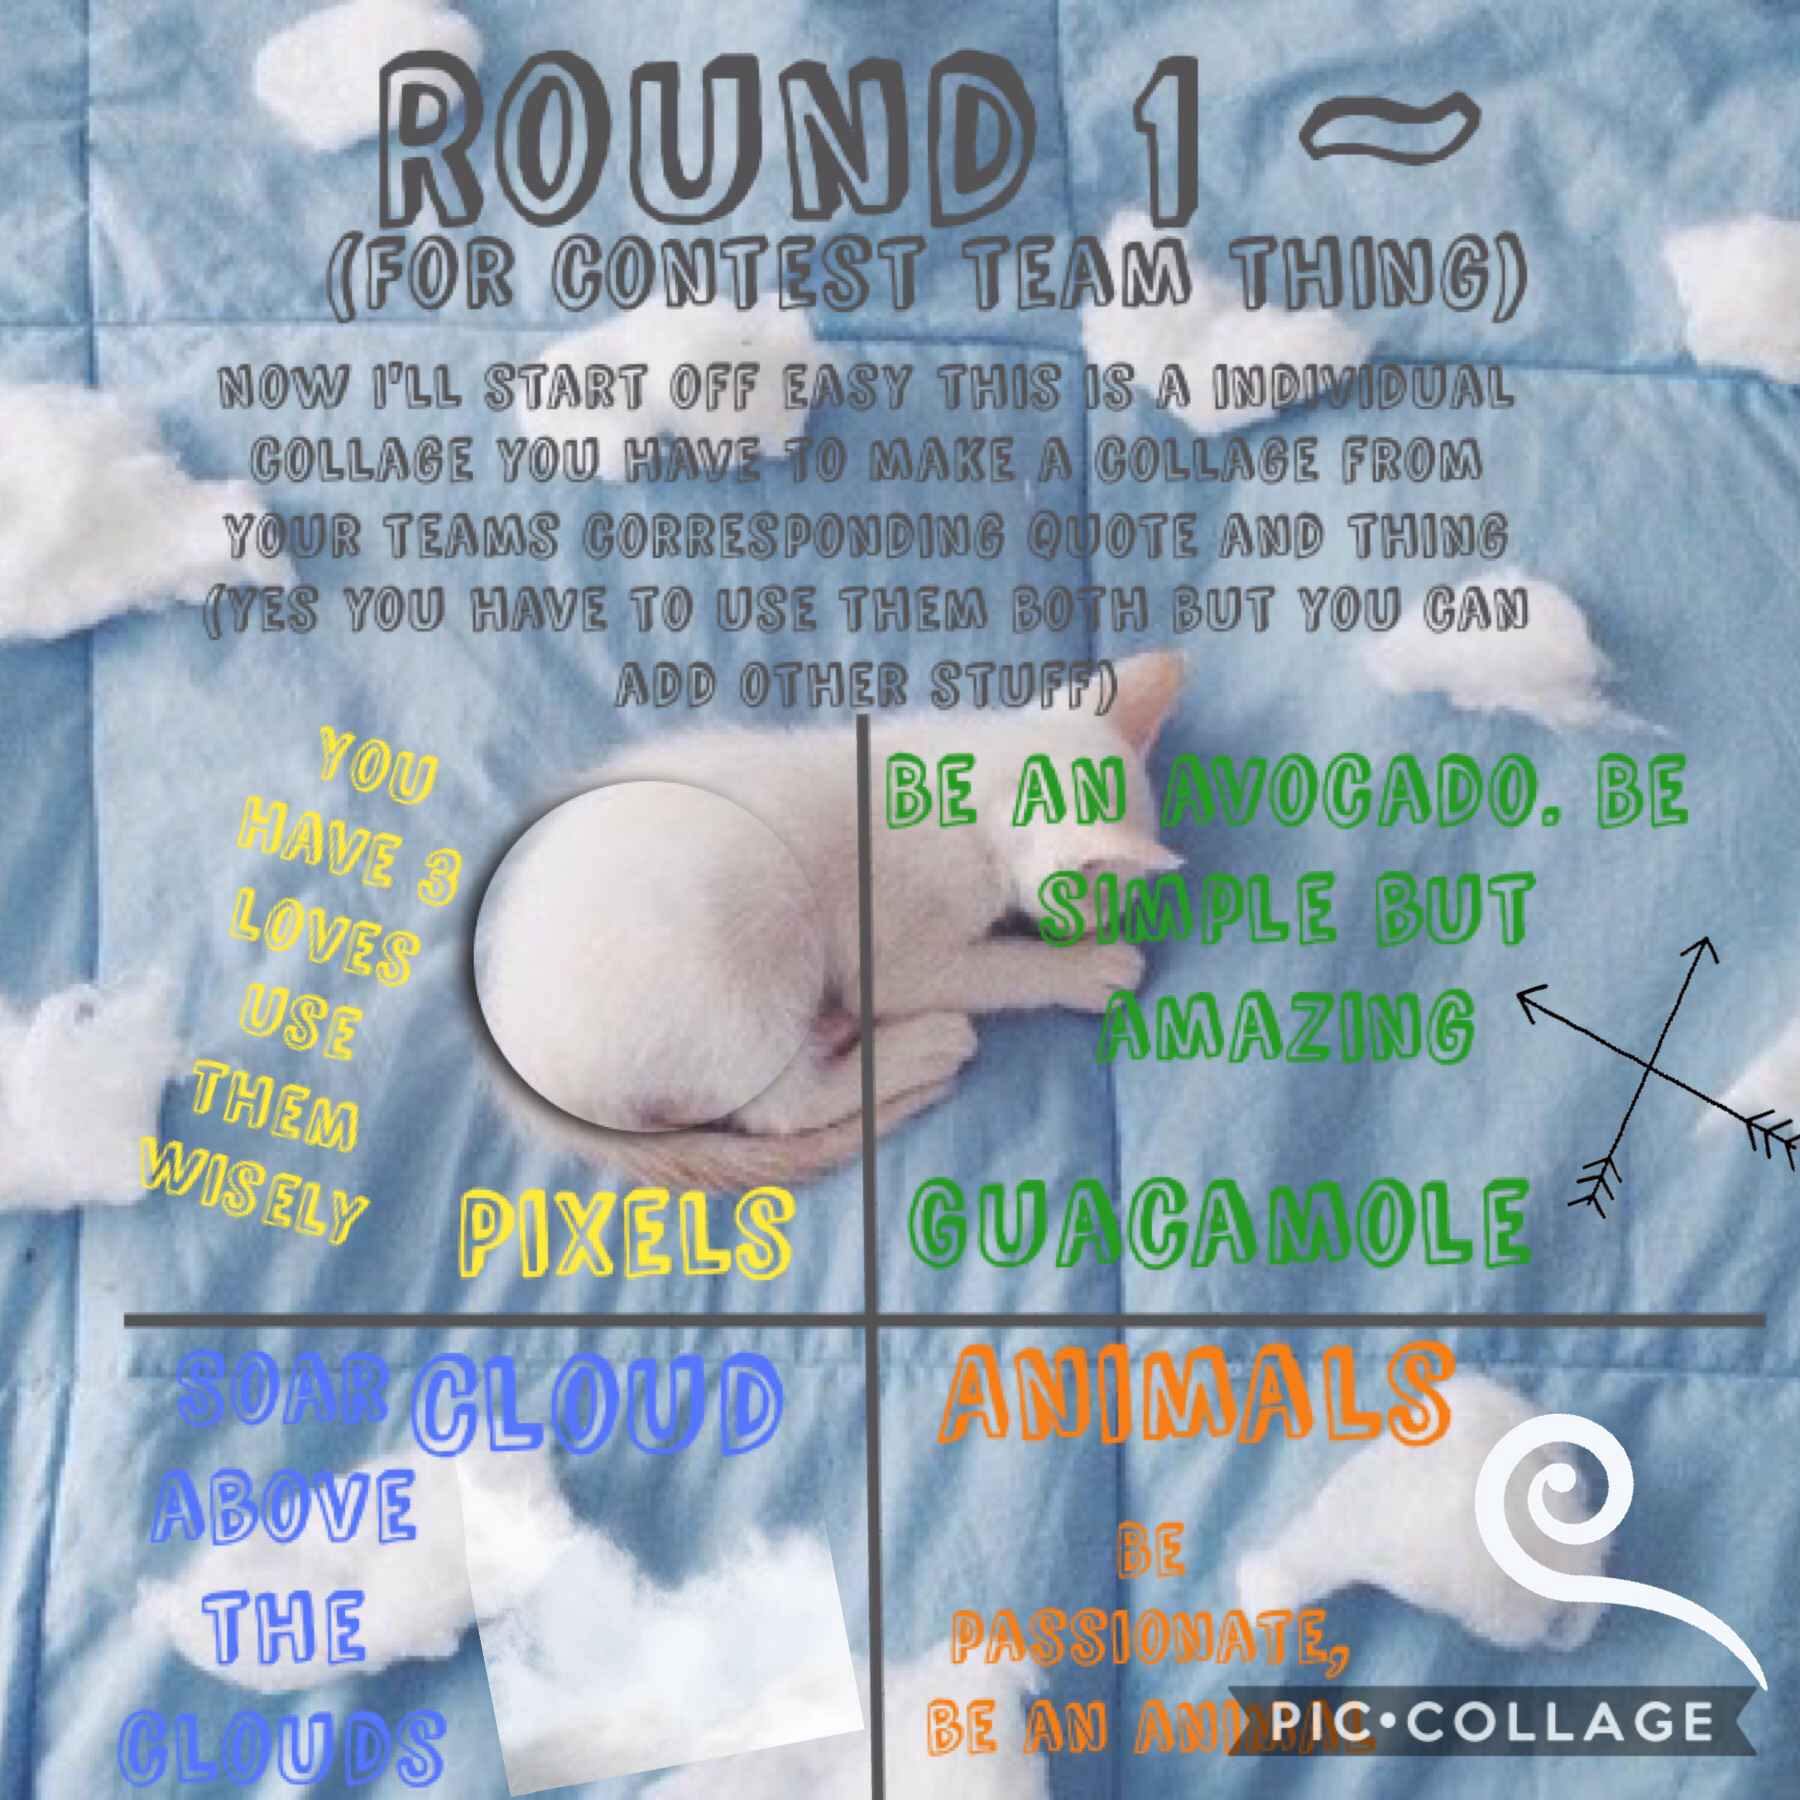 Round 1 ends on the 25th (aka Christmas) of December ~ Tik_Tok_Time